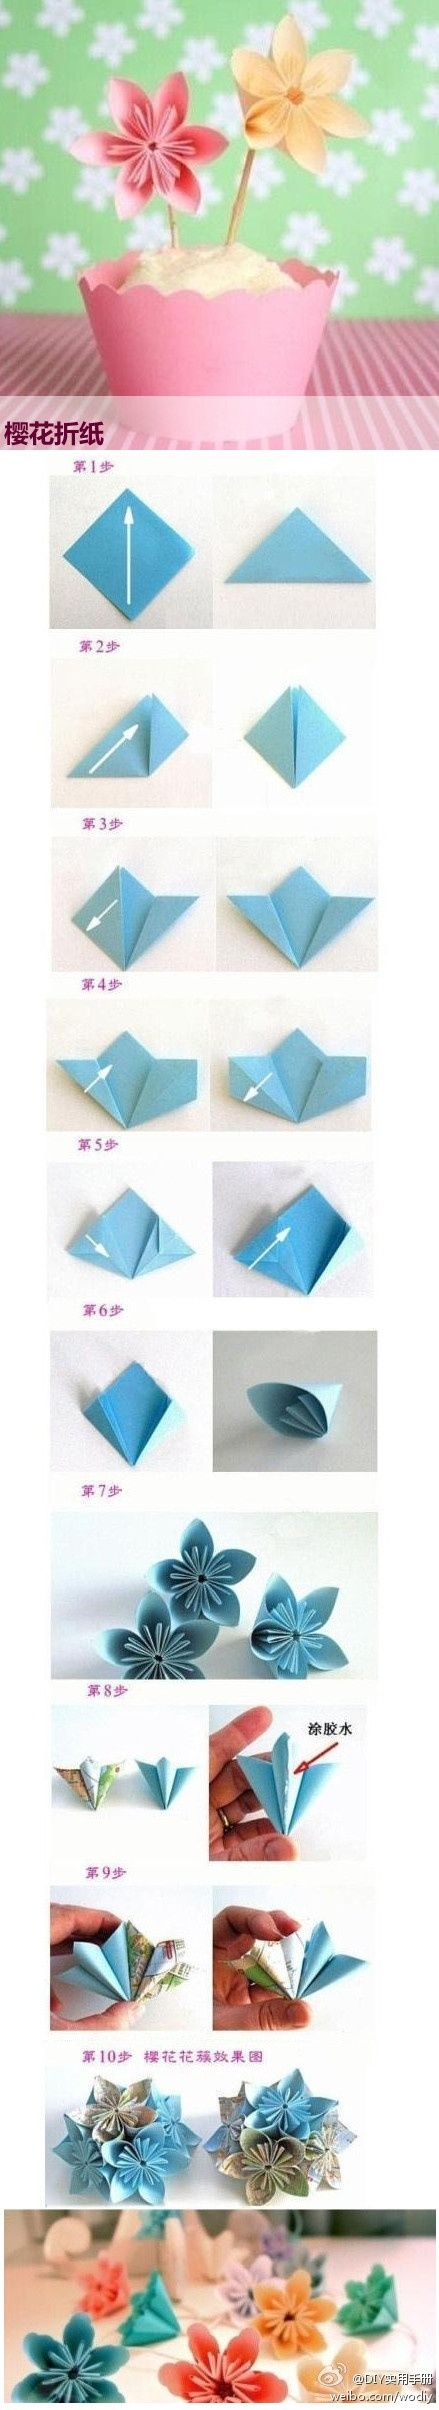 Making Origami for Your Wedding - The Inspired Bride